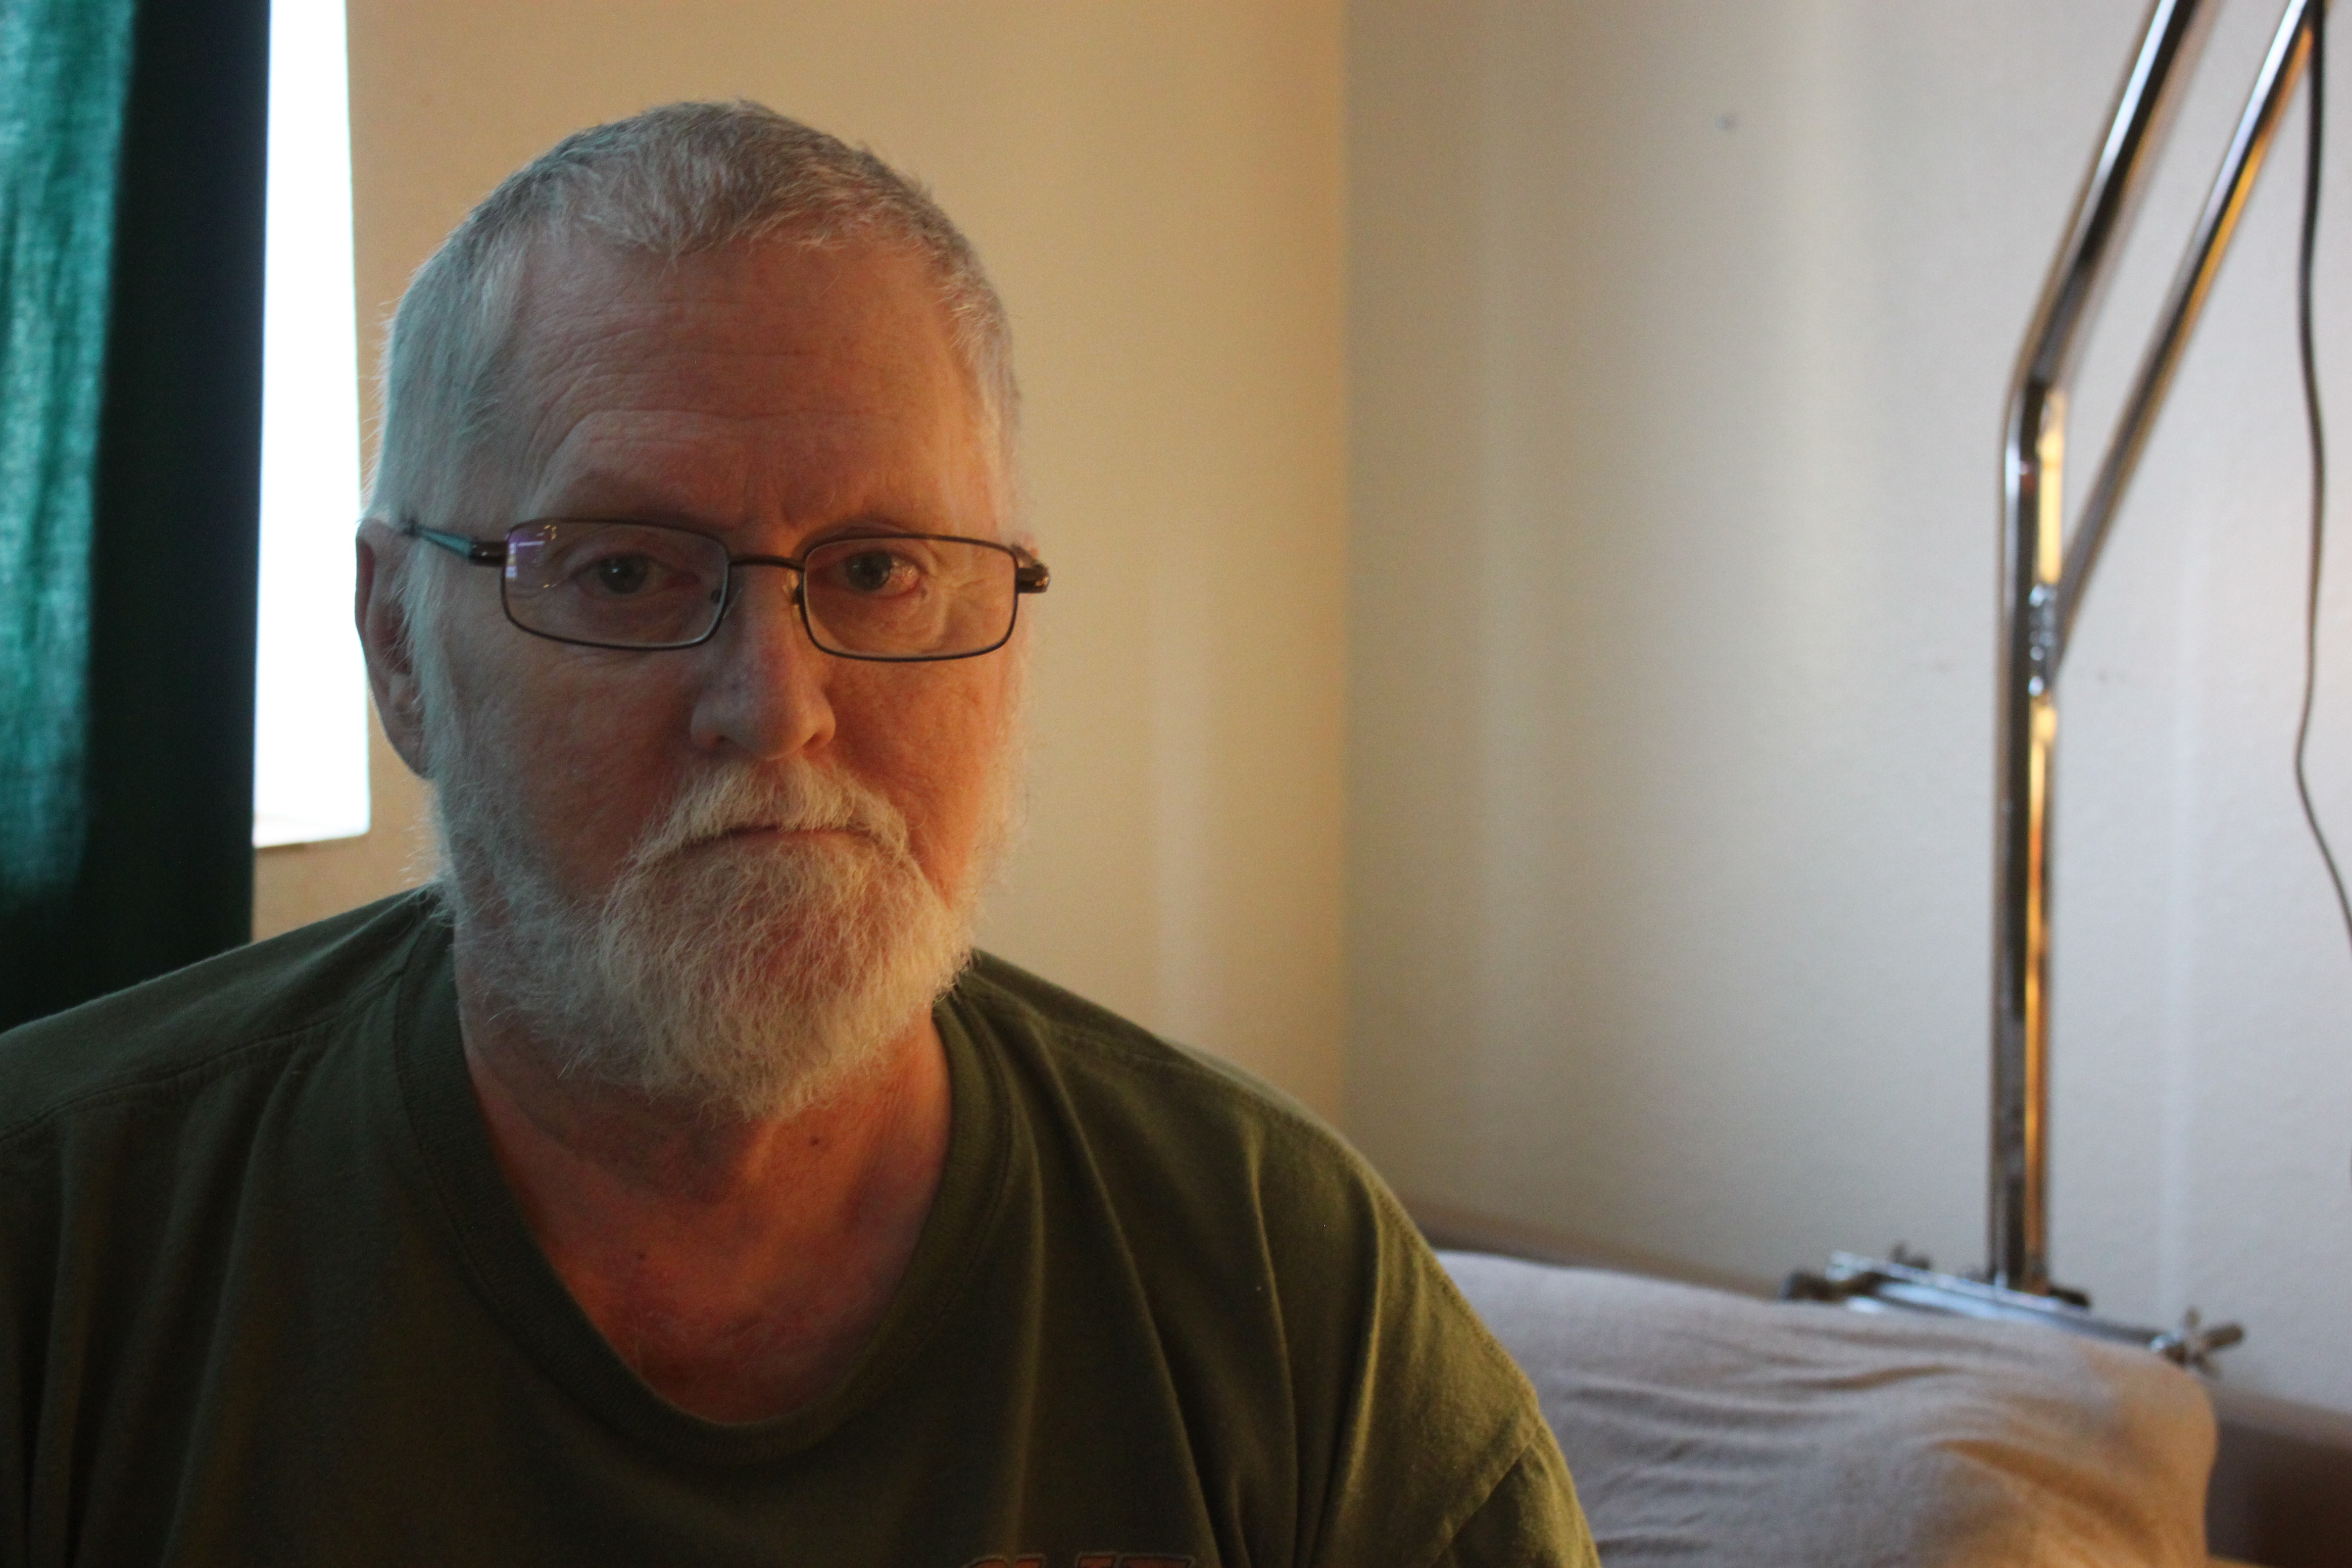 Thomas Smith has lived in St. Vincent de Paul's transitional housing for one year. (Photo by Lisa Phu/KTOO)